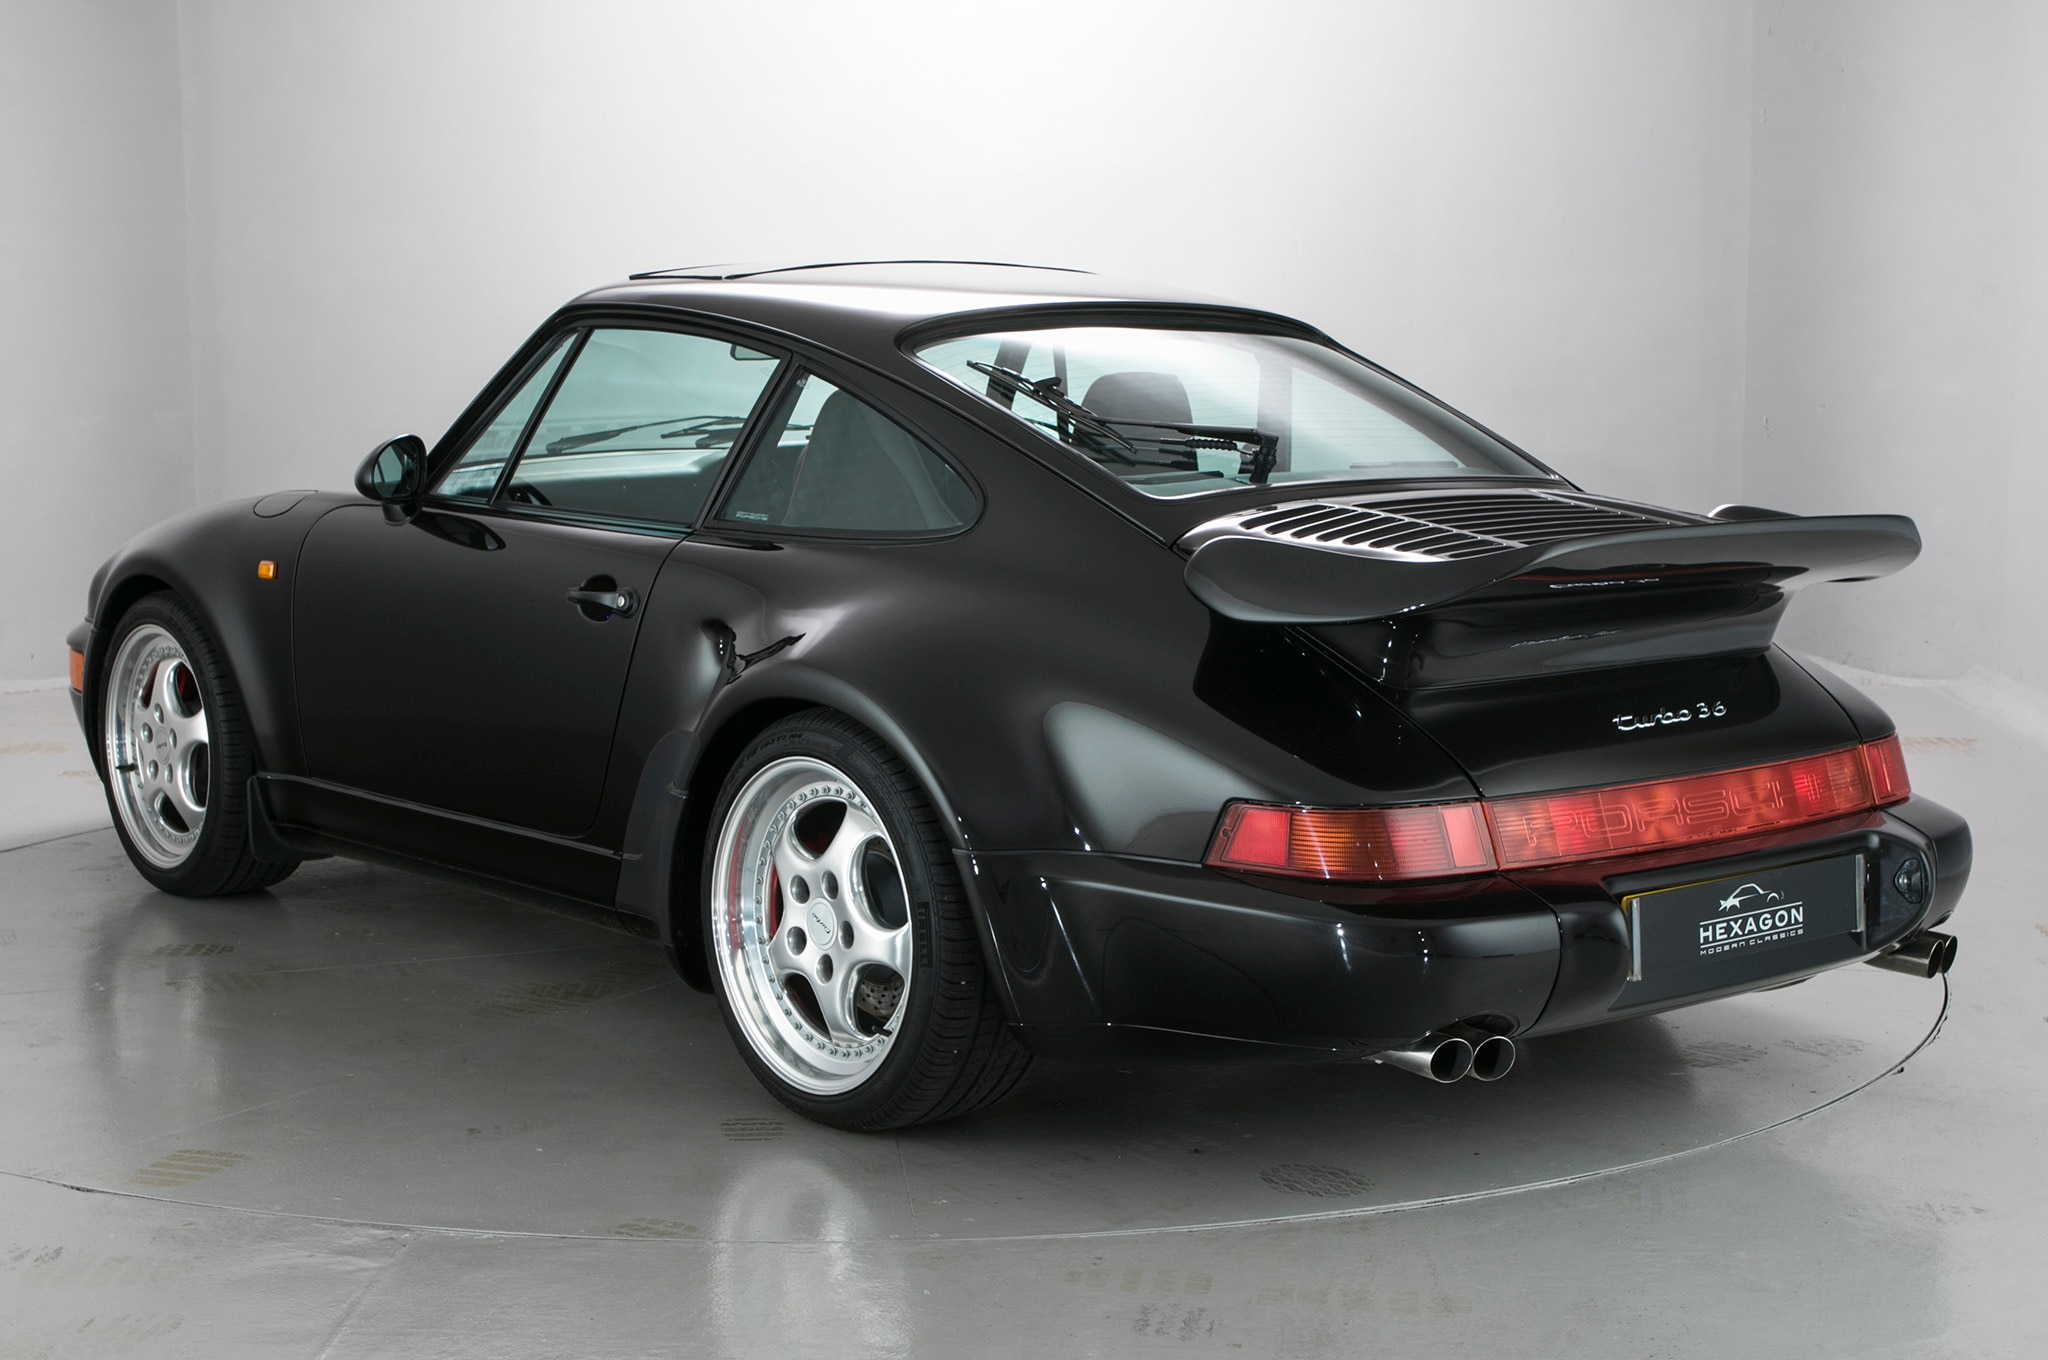 Rare 1994 Porsche 964 911 Turbo 3 6 S Flachbau Up For Sale